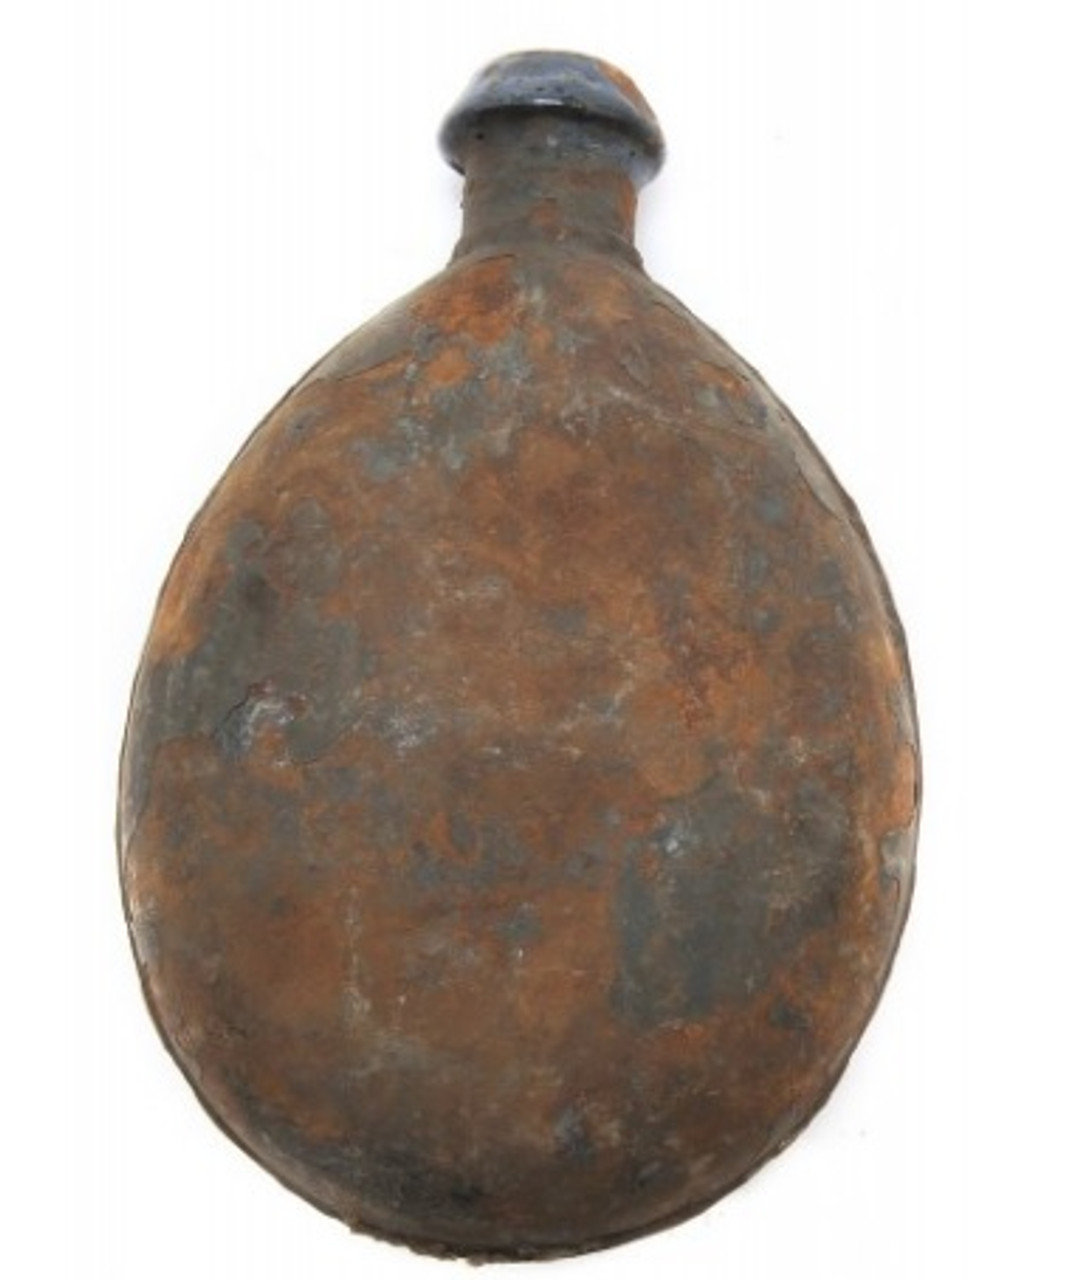 Original German WW1 Canteen with threaded top